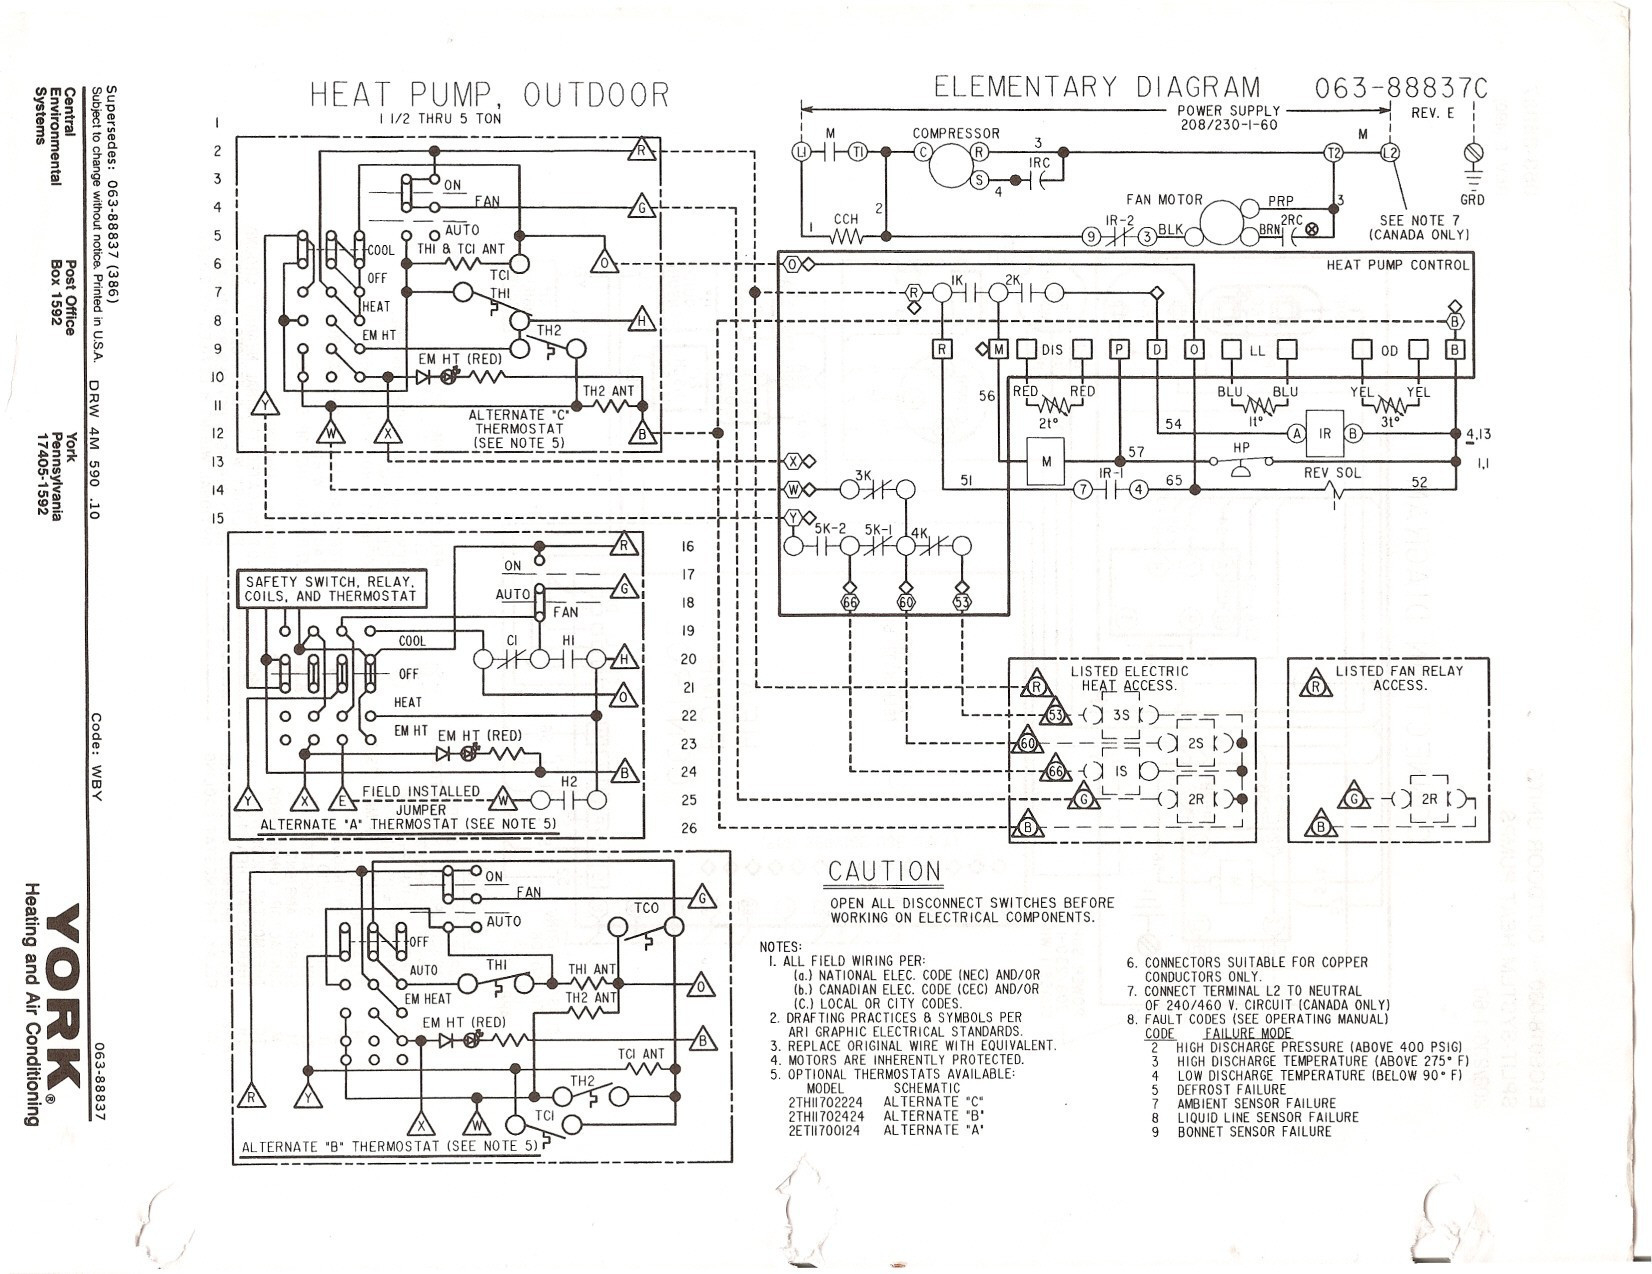 Diagram Goodman Heat Pump Package Unit Wiring Diagram Full Version Hd Quality Wiring Diagram Wiringitwell Ocstorino It